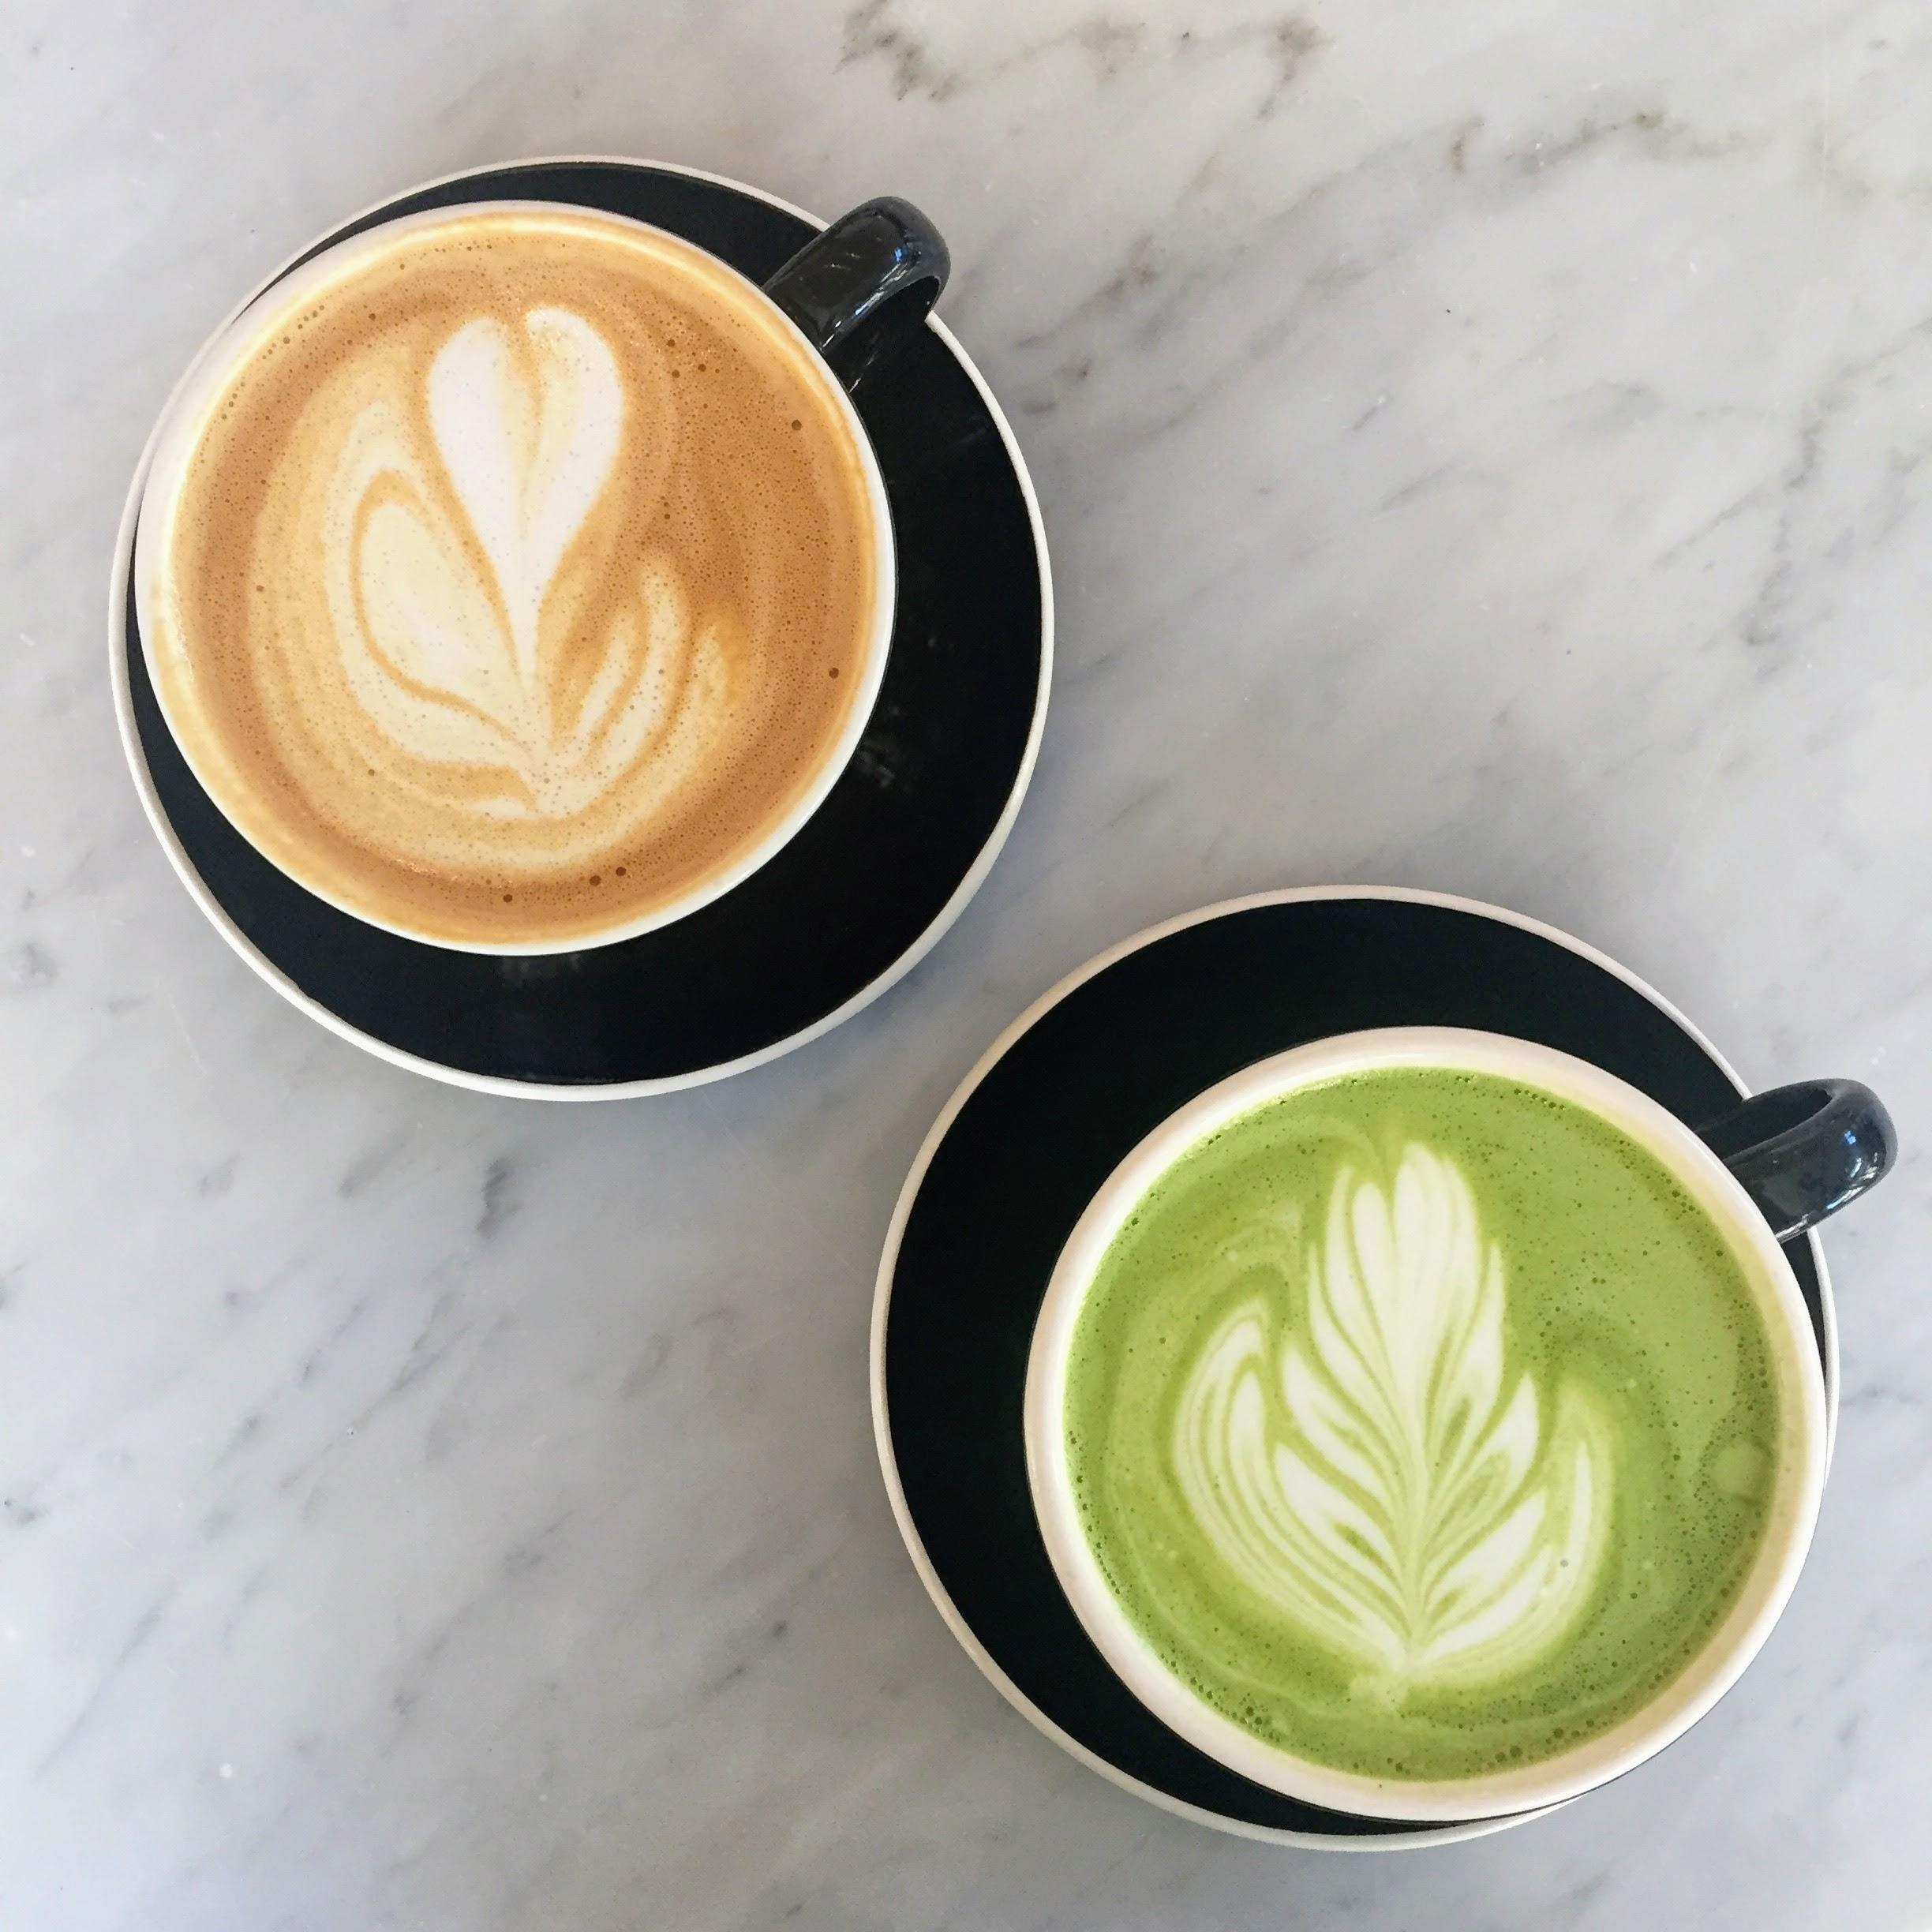 Low calorie days made me ask the question, how much coffee and matcha is too much? Is there a limit or can I sip this all day?{ }(Image: Amanda Shapin)